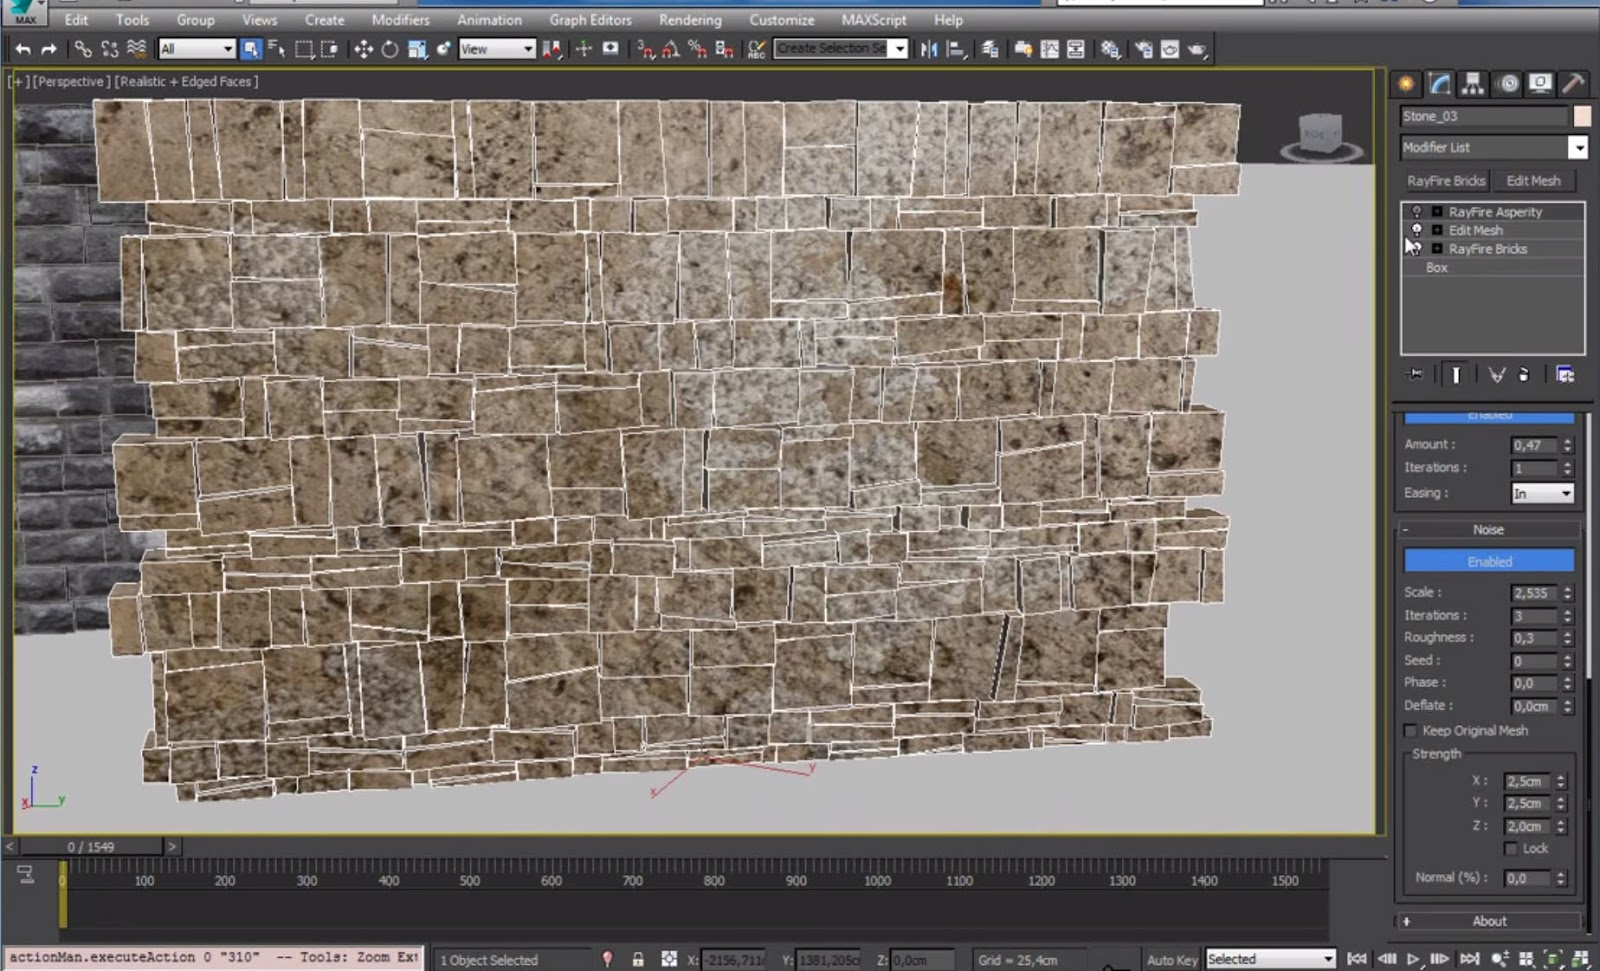 Rayfire 3ds Max 2015